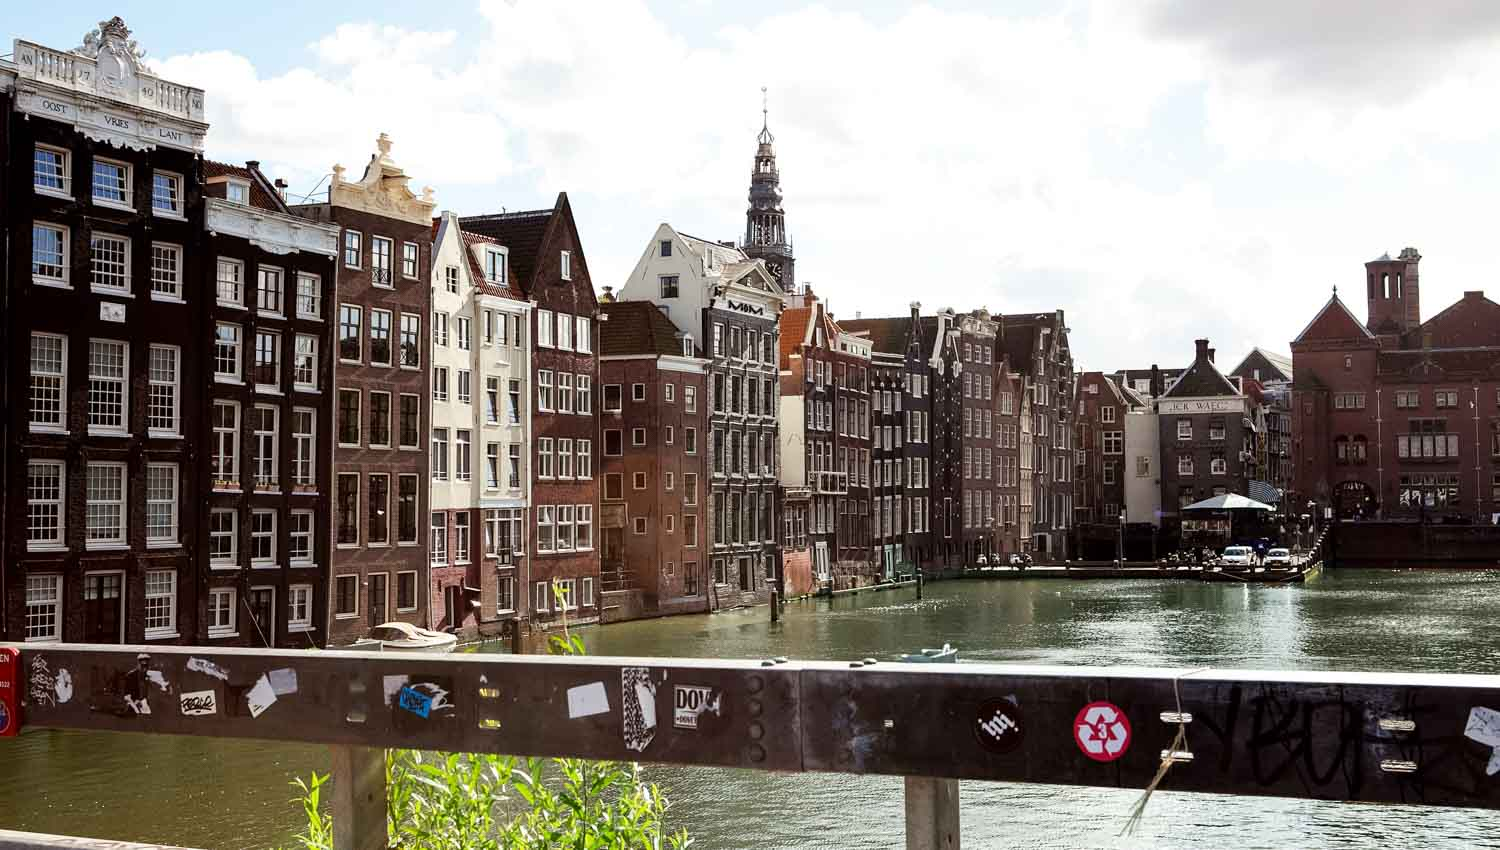 The Amstel gave Amsterdam its name